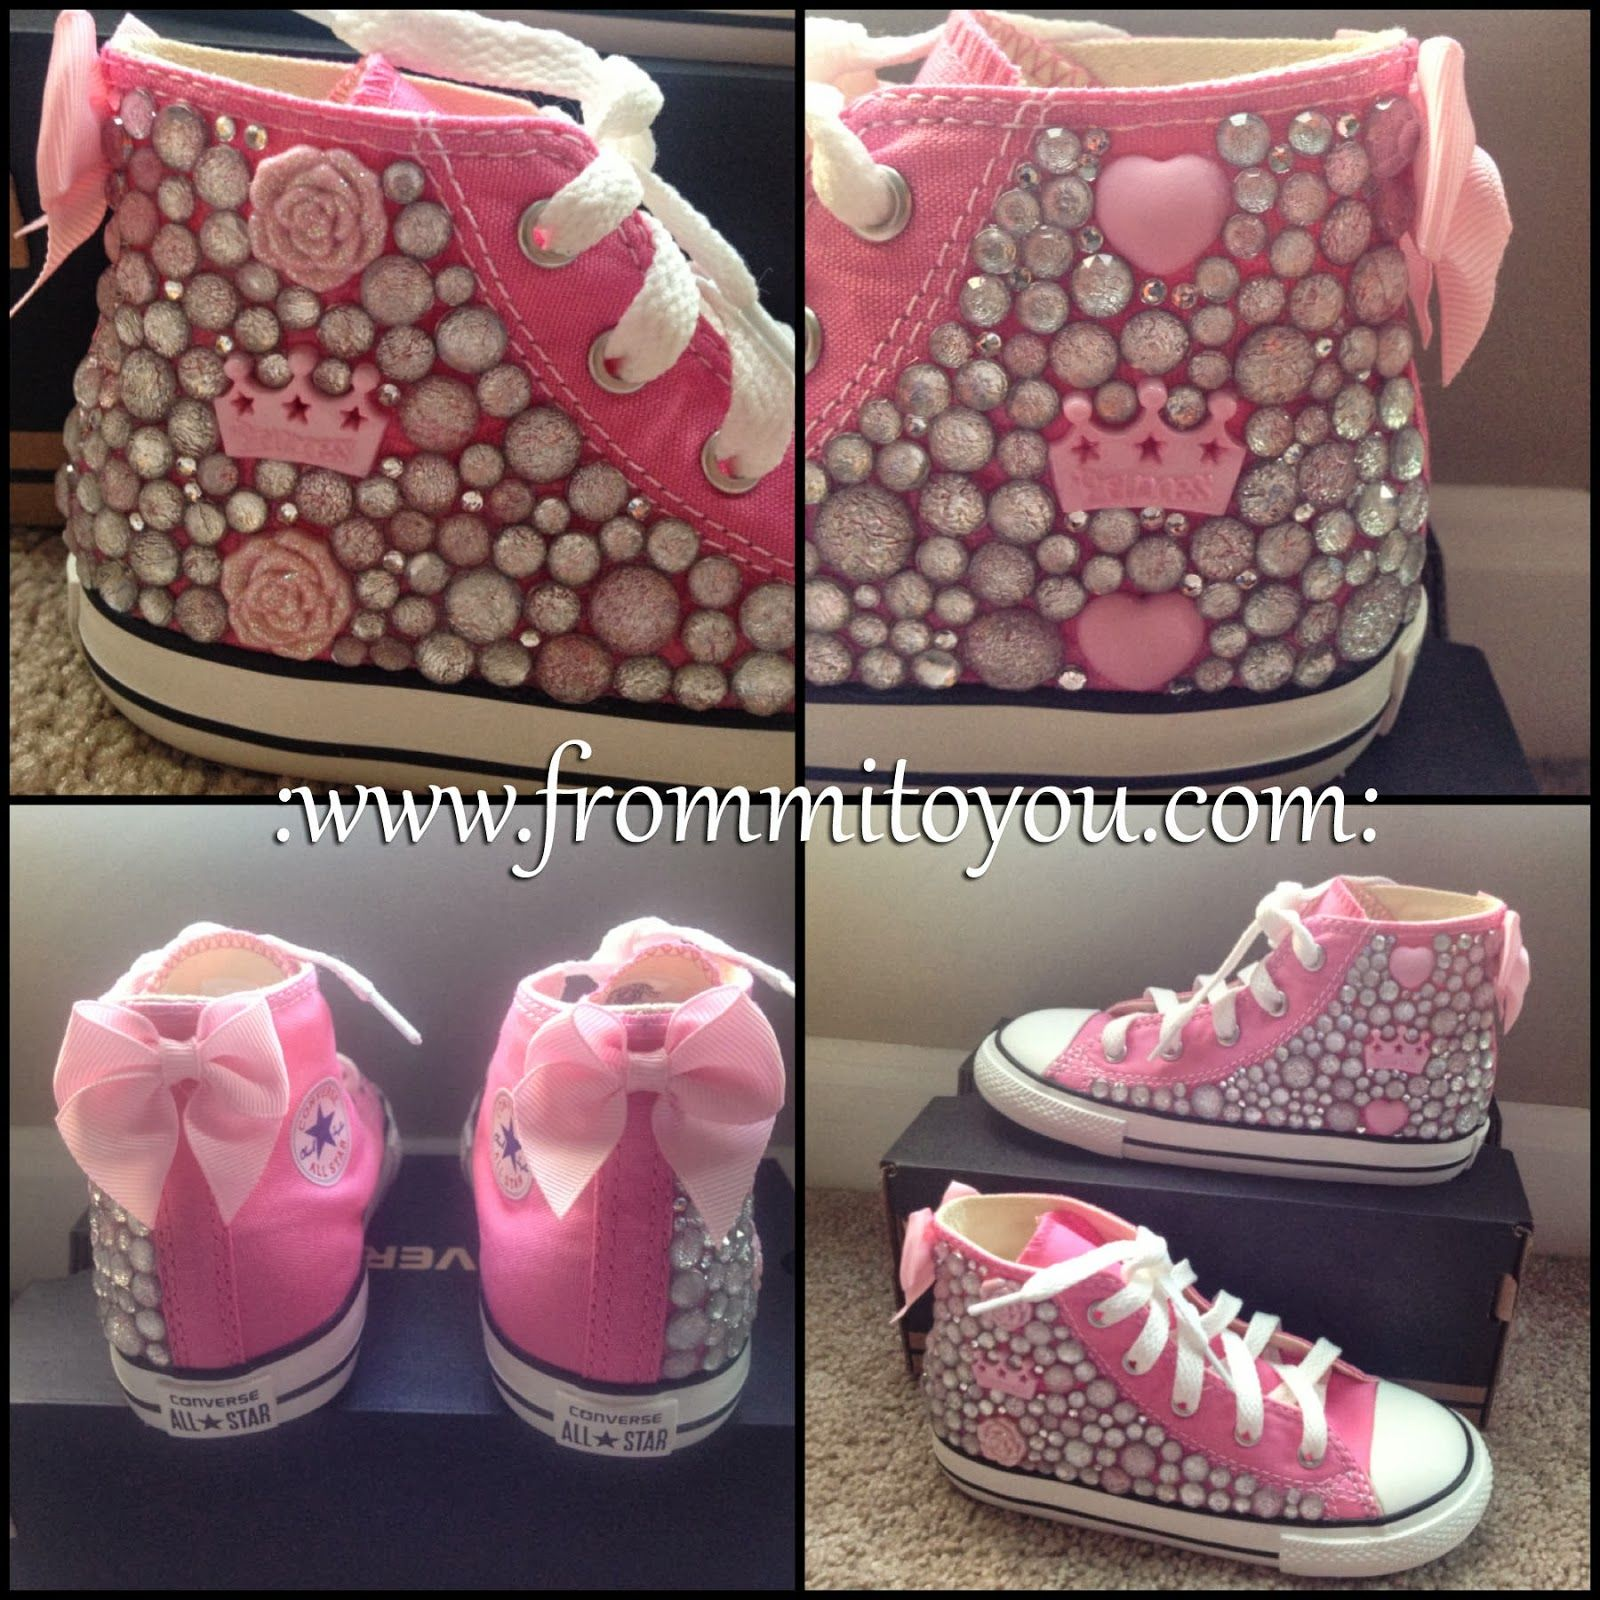 55bcdd57ba31 Embellished Junk Chuck sby From Mi To You  shoes  converse  chucktaylor   bling  kids  girl  bow  pink  girlie  princess  flower  frommitoyou